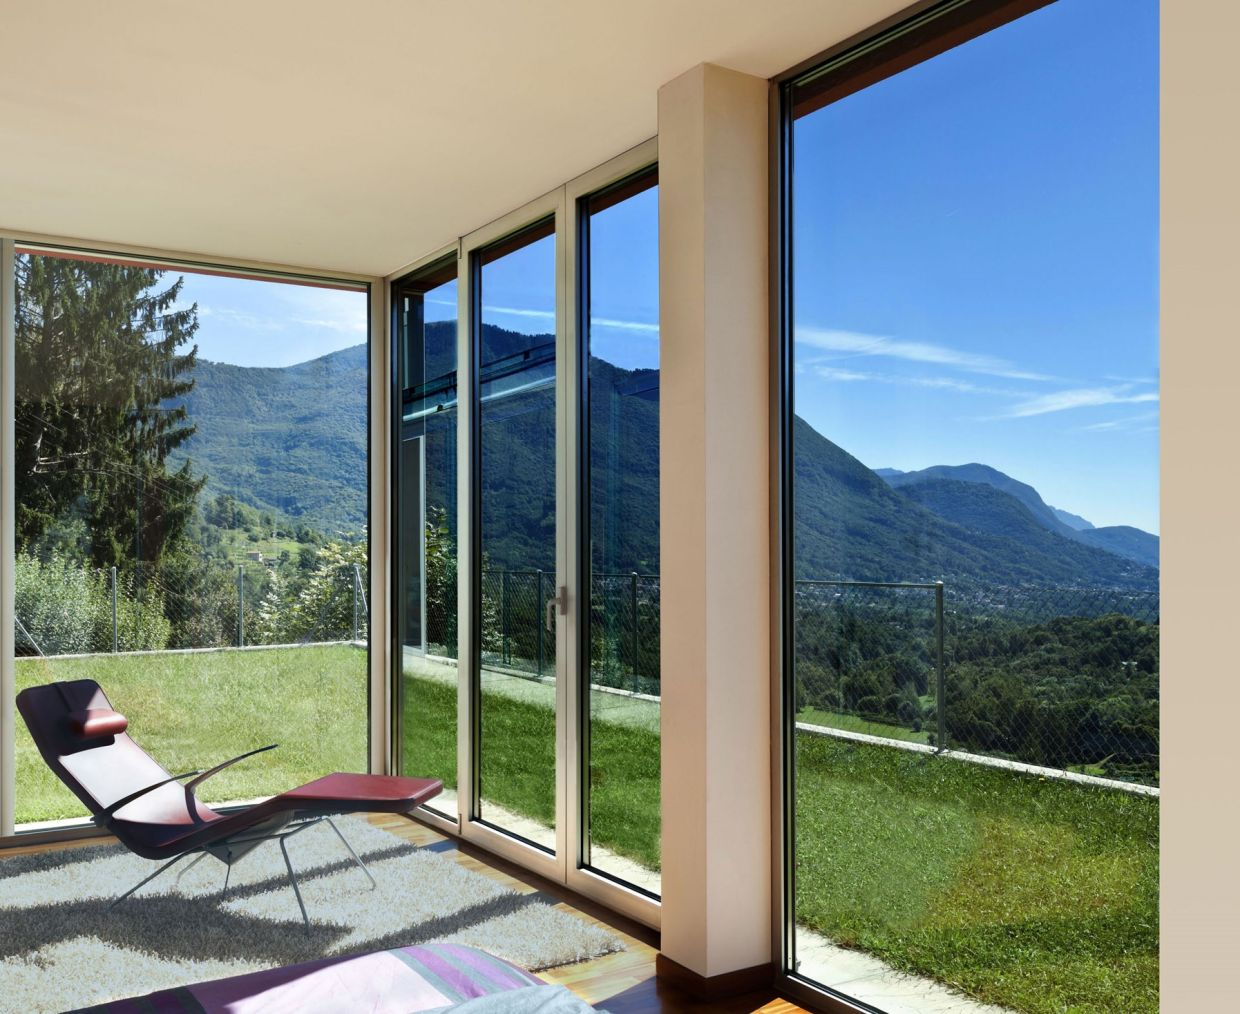 Direct sunlight can make rooms unbearably hot. One possibility: Glass that can darken in sunlight.